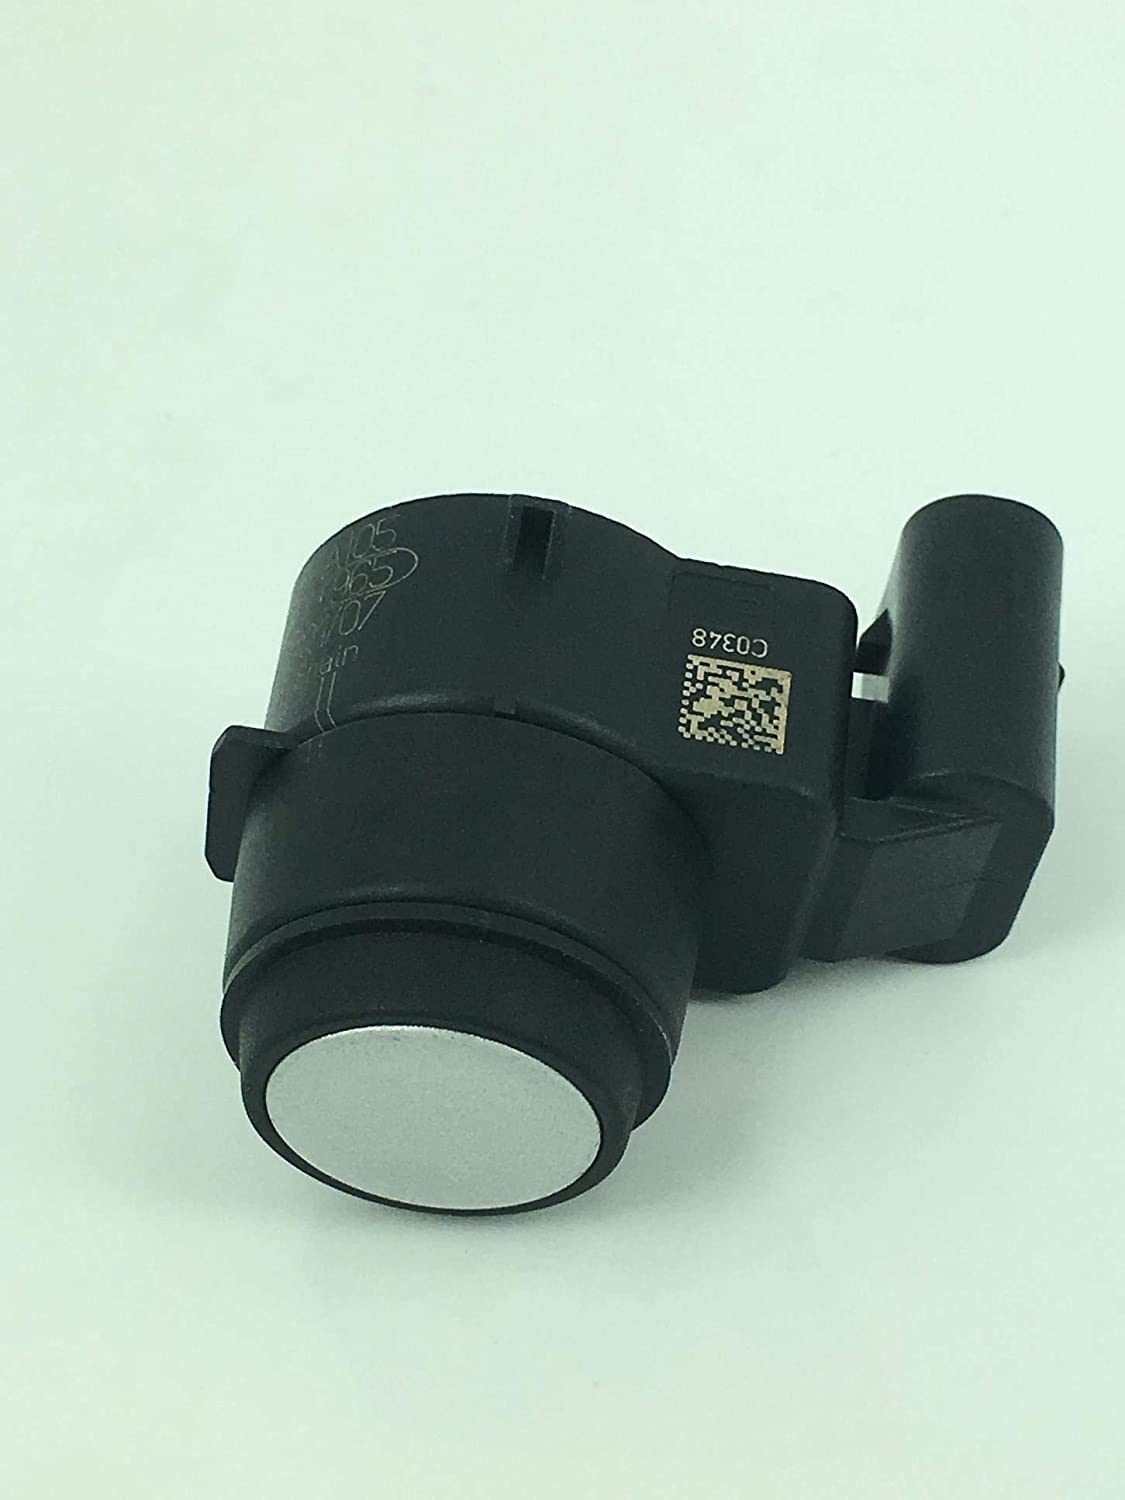 9805529 0263013200 Mini Countryman S R60 PDC Parking Sensor 9805529 Crystal Silver Metallic 1 Hass Foshan Auto Parts